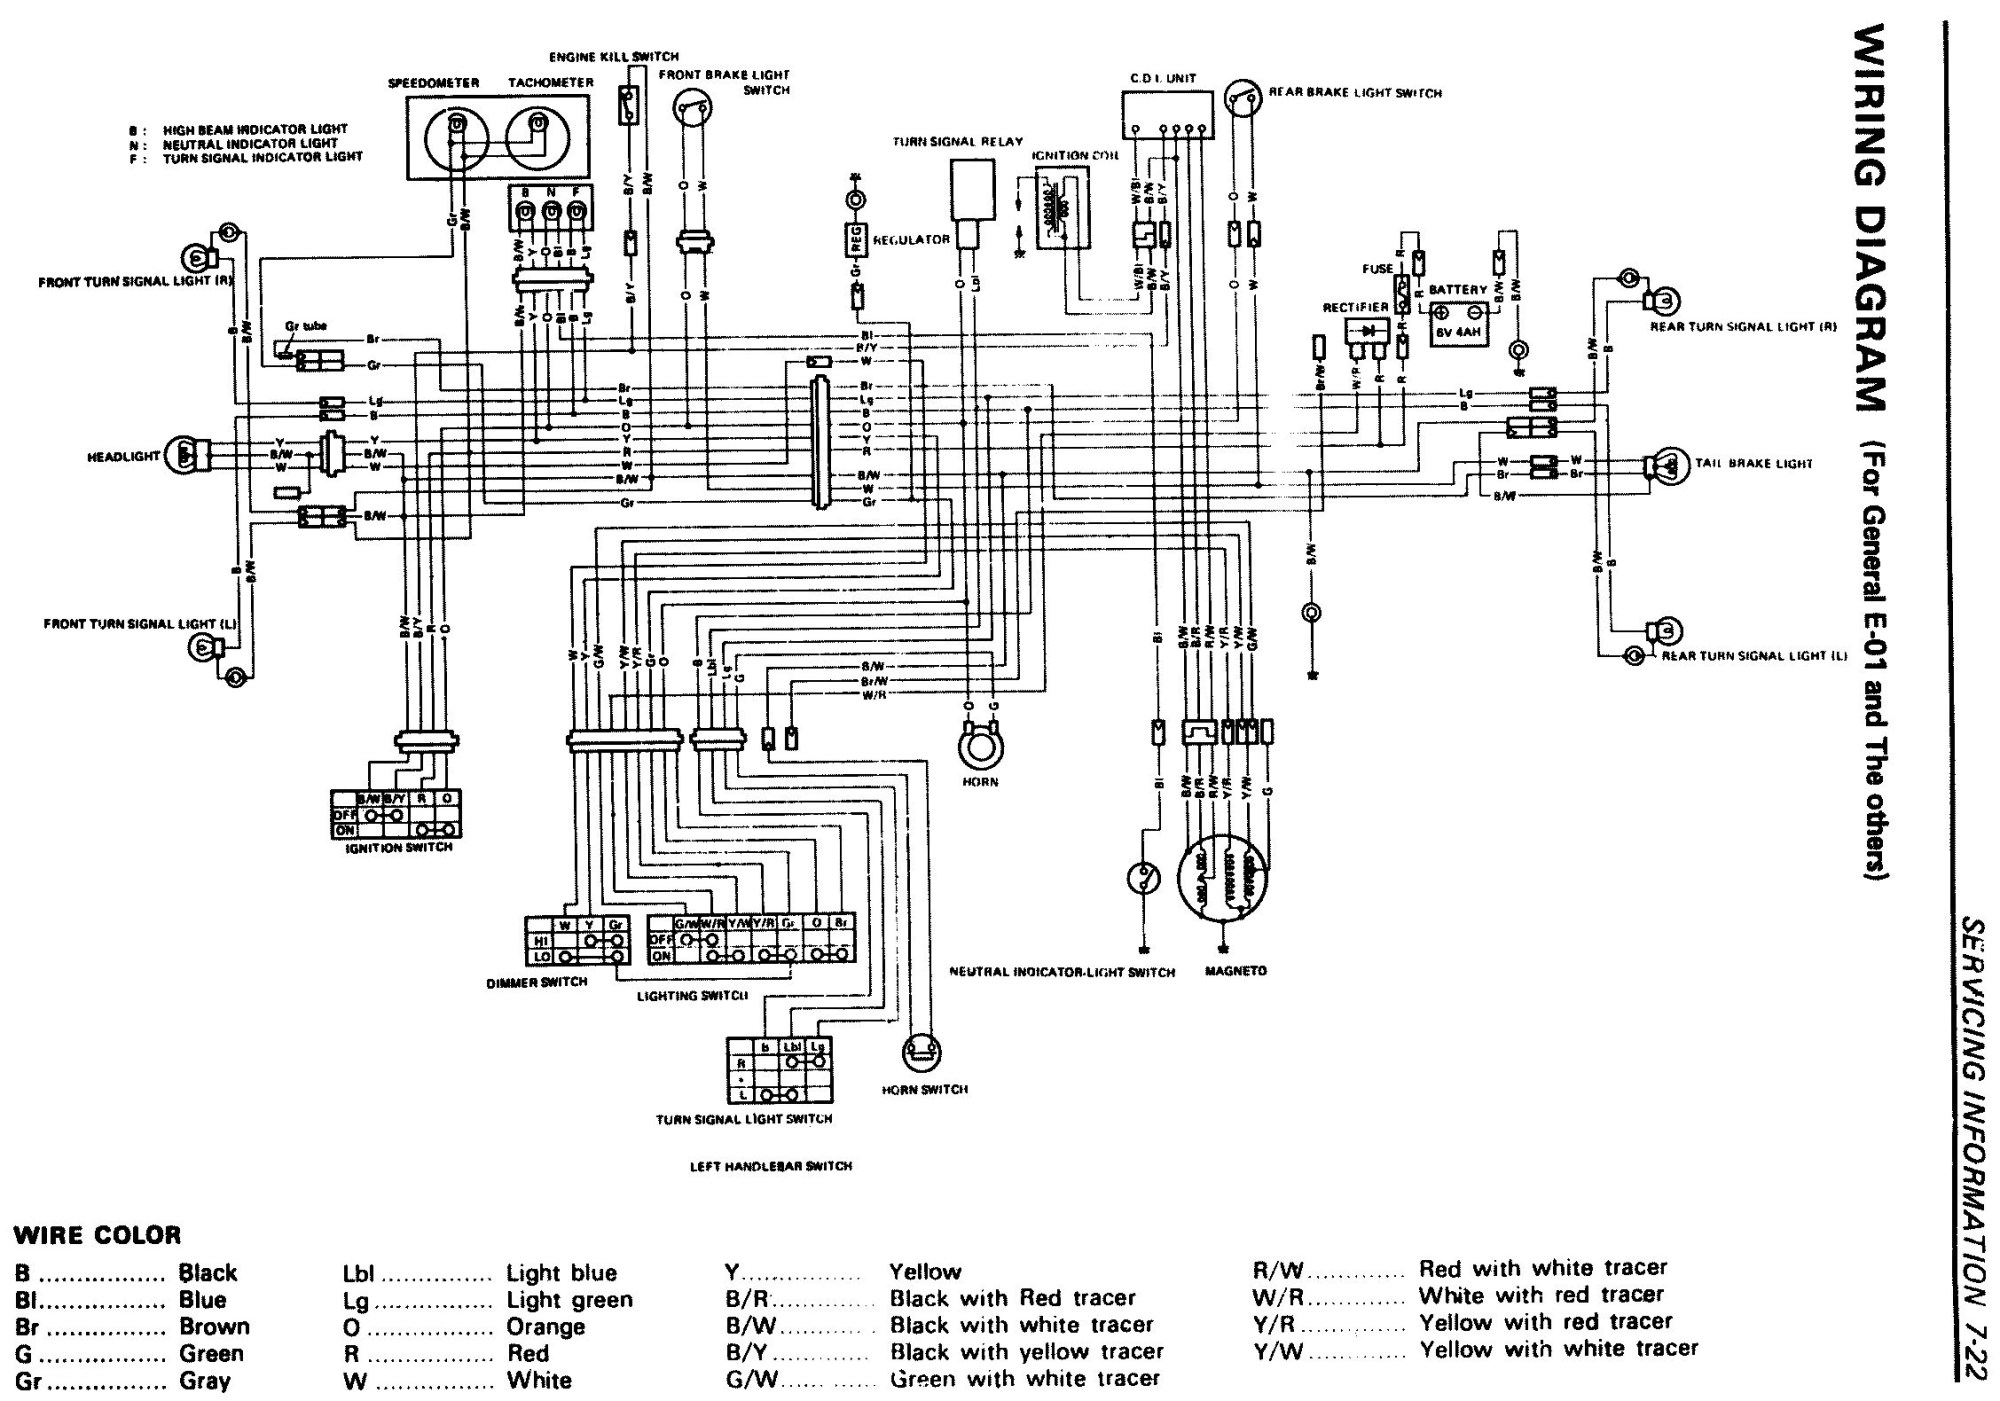 hight resolution of suzuki gt250 wiring diagram wiring diagram diagram of suzuki motorcycle parts 1972 ts125 wiring harness diagram1981